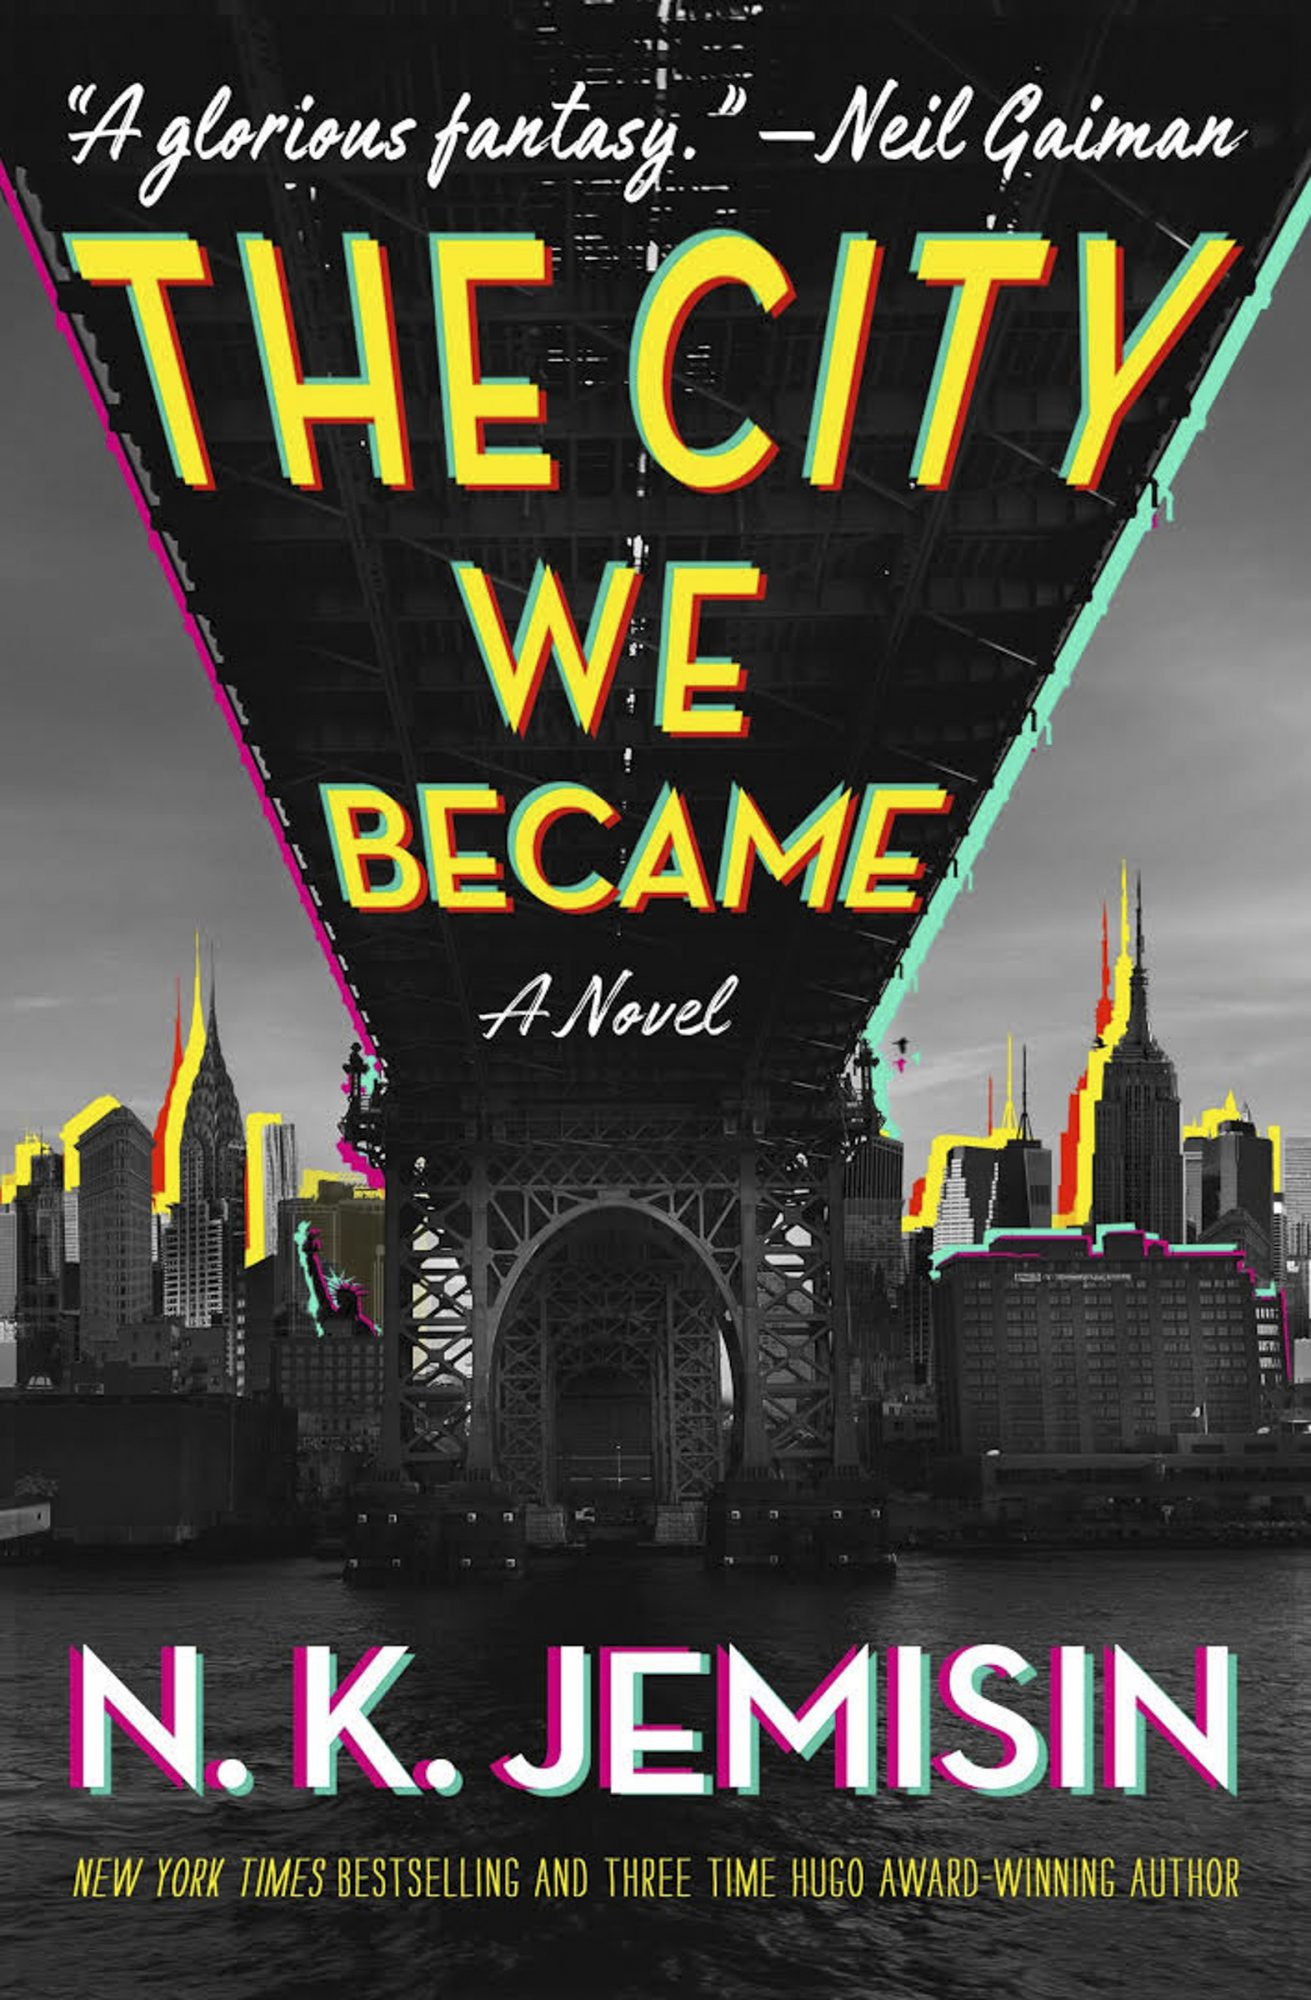 The City We Became by N.K. Jemisin CR: Orbit